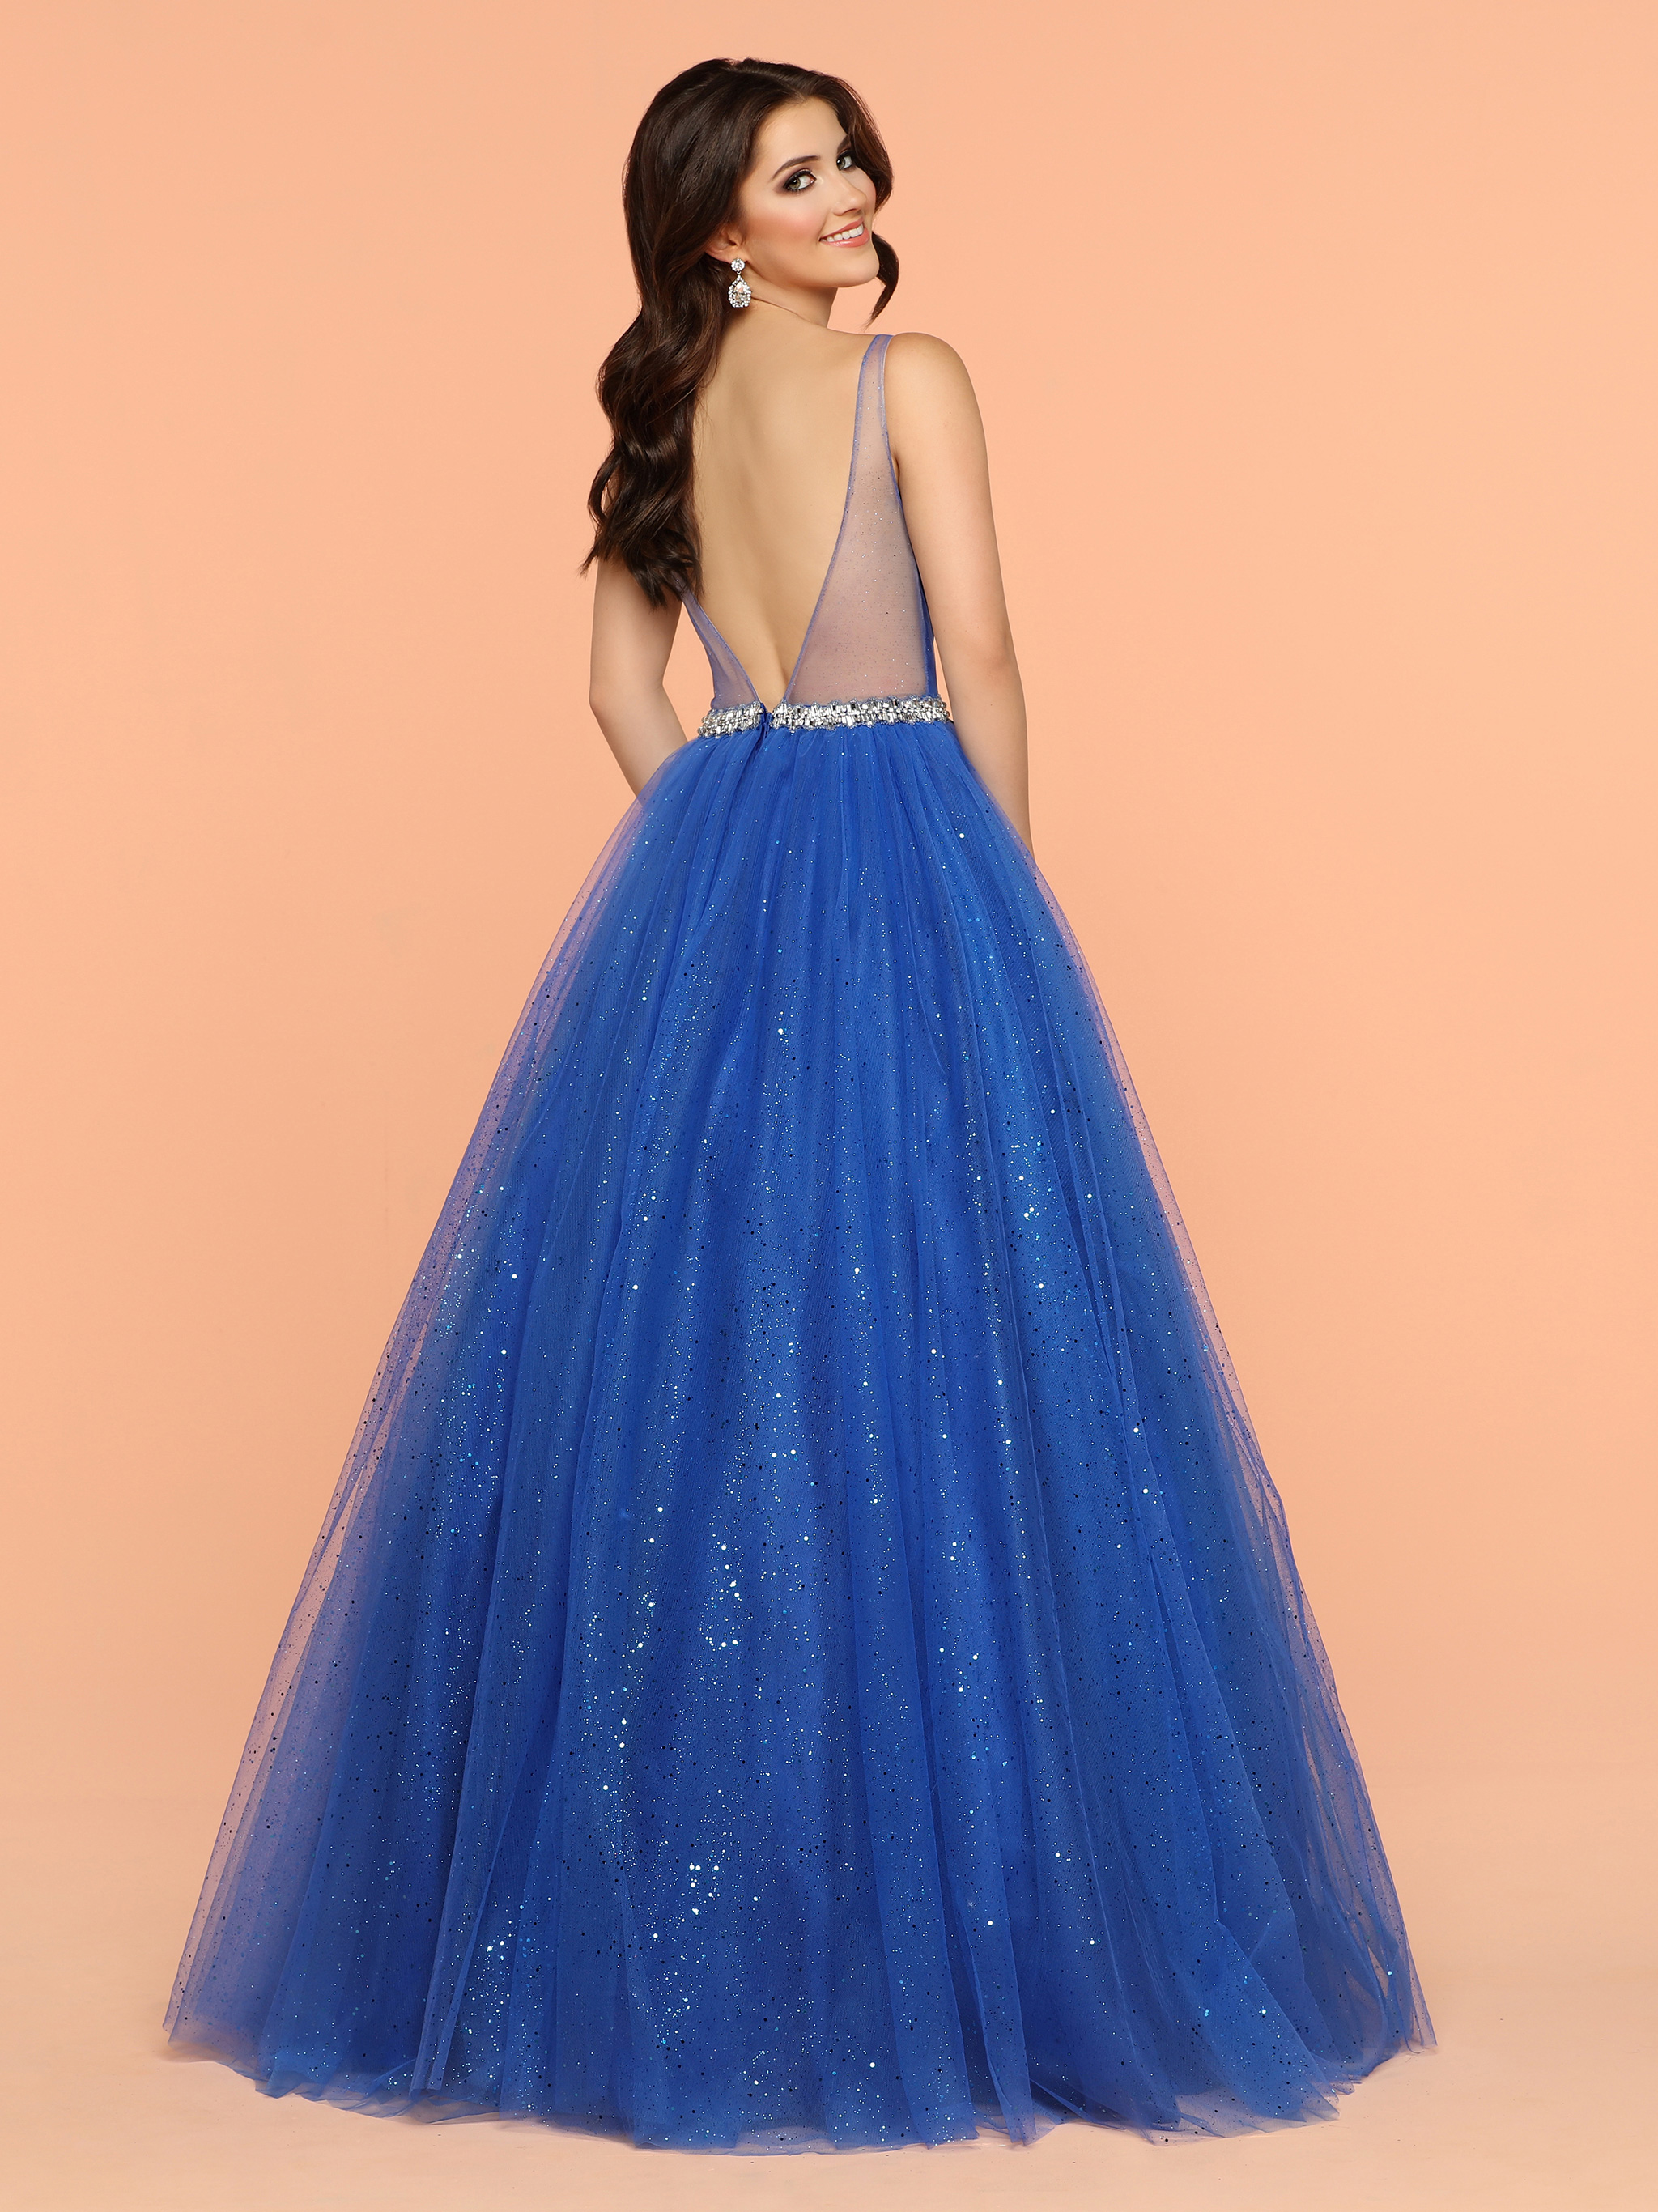 Image showing back view of style #71904